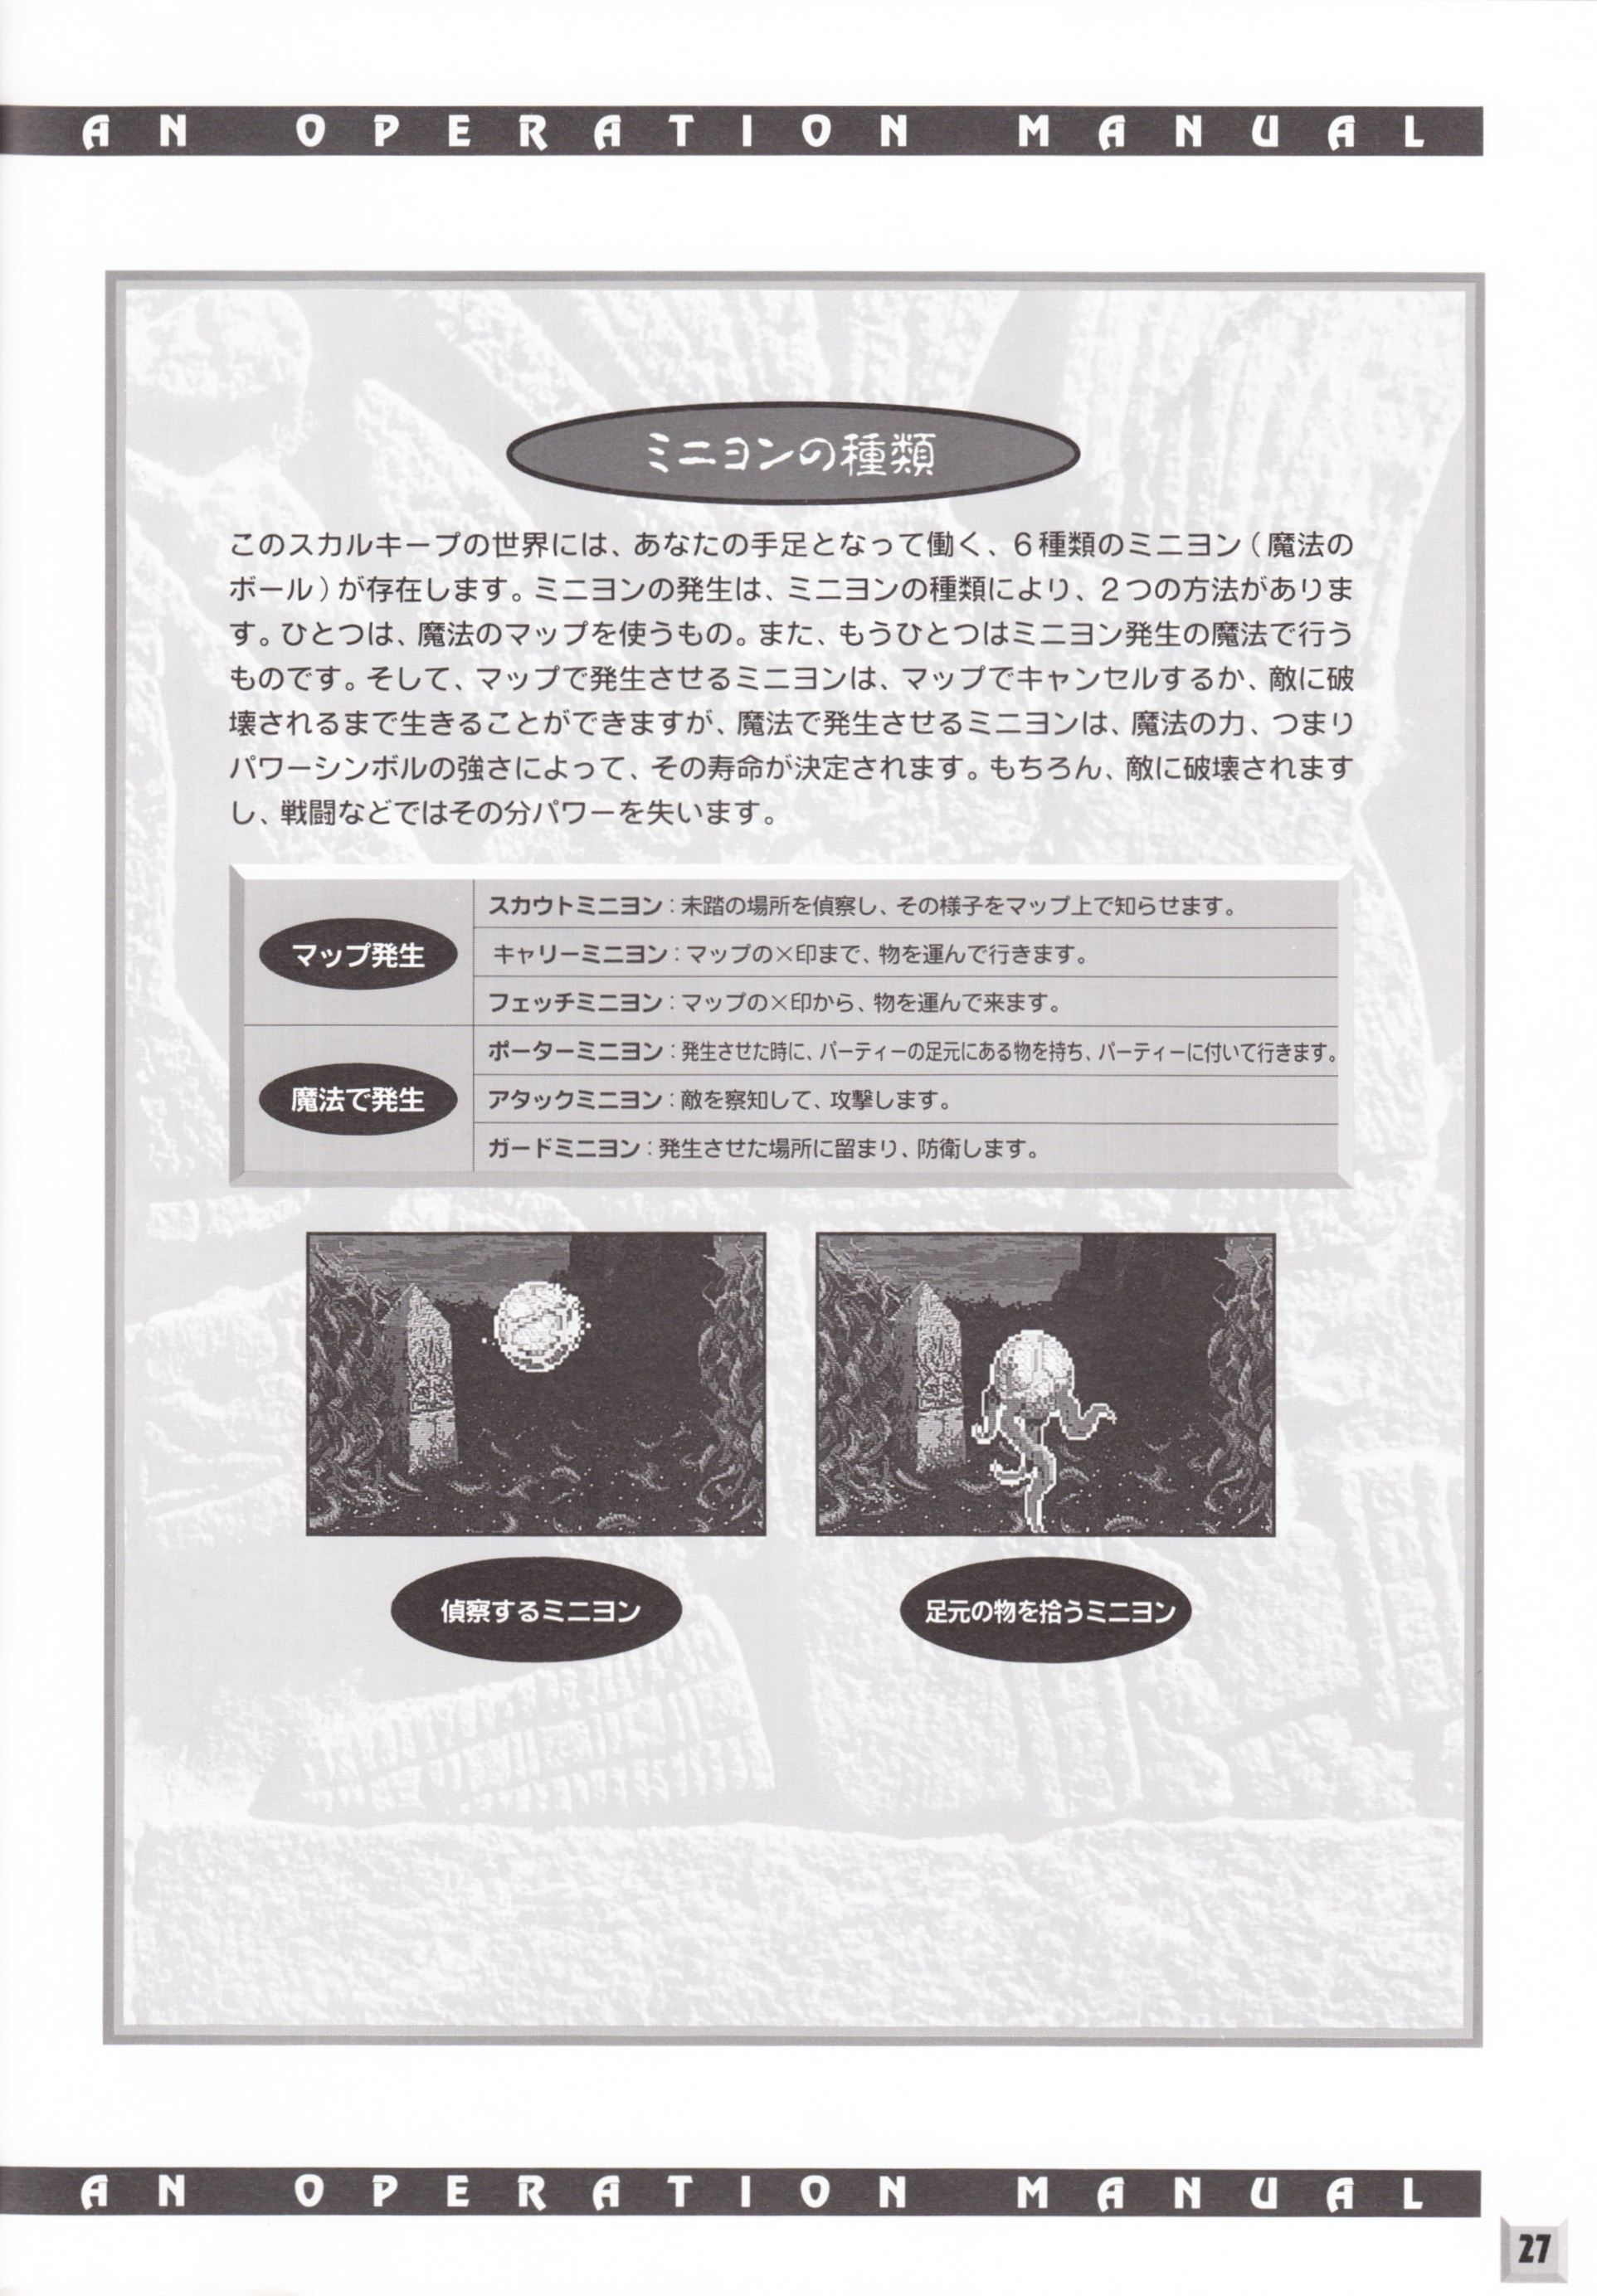 Game - Dungeon Master II - JP - PC-9801 - 3.5-inch - An Operation Manual - Page 029 - Scan